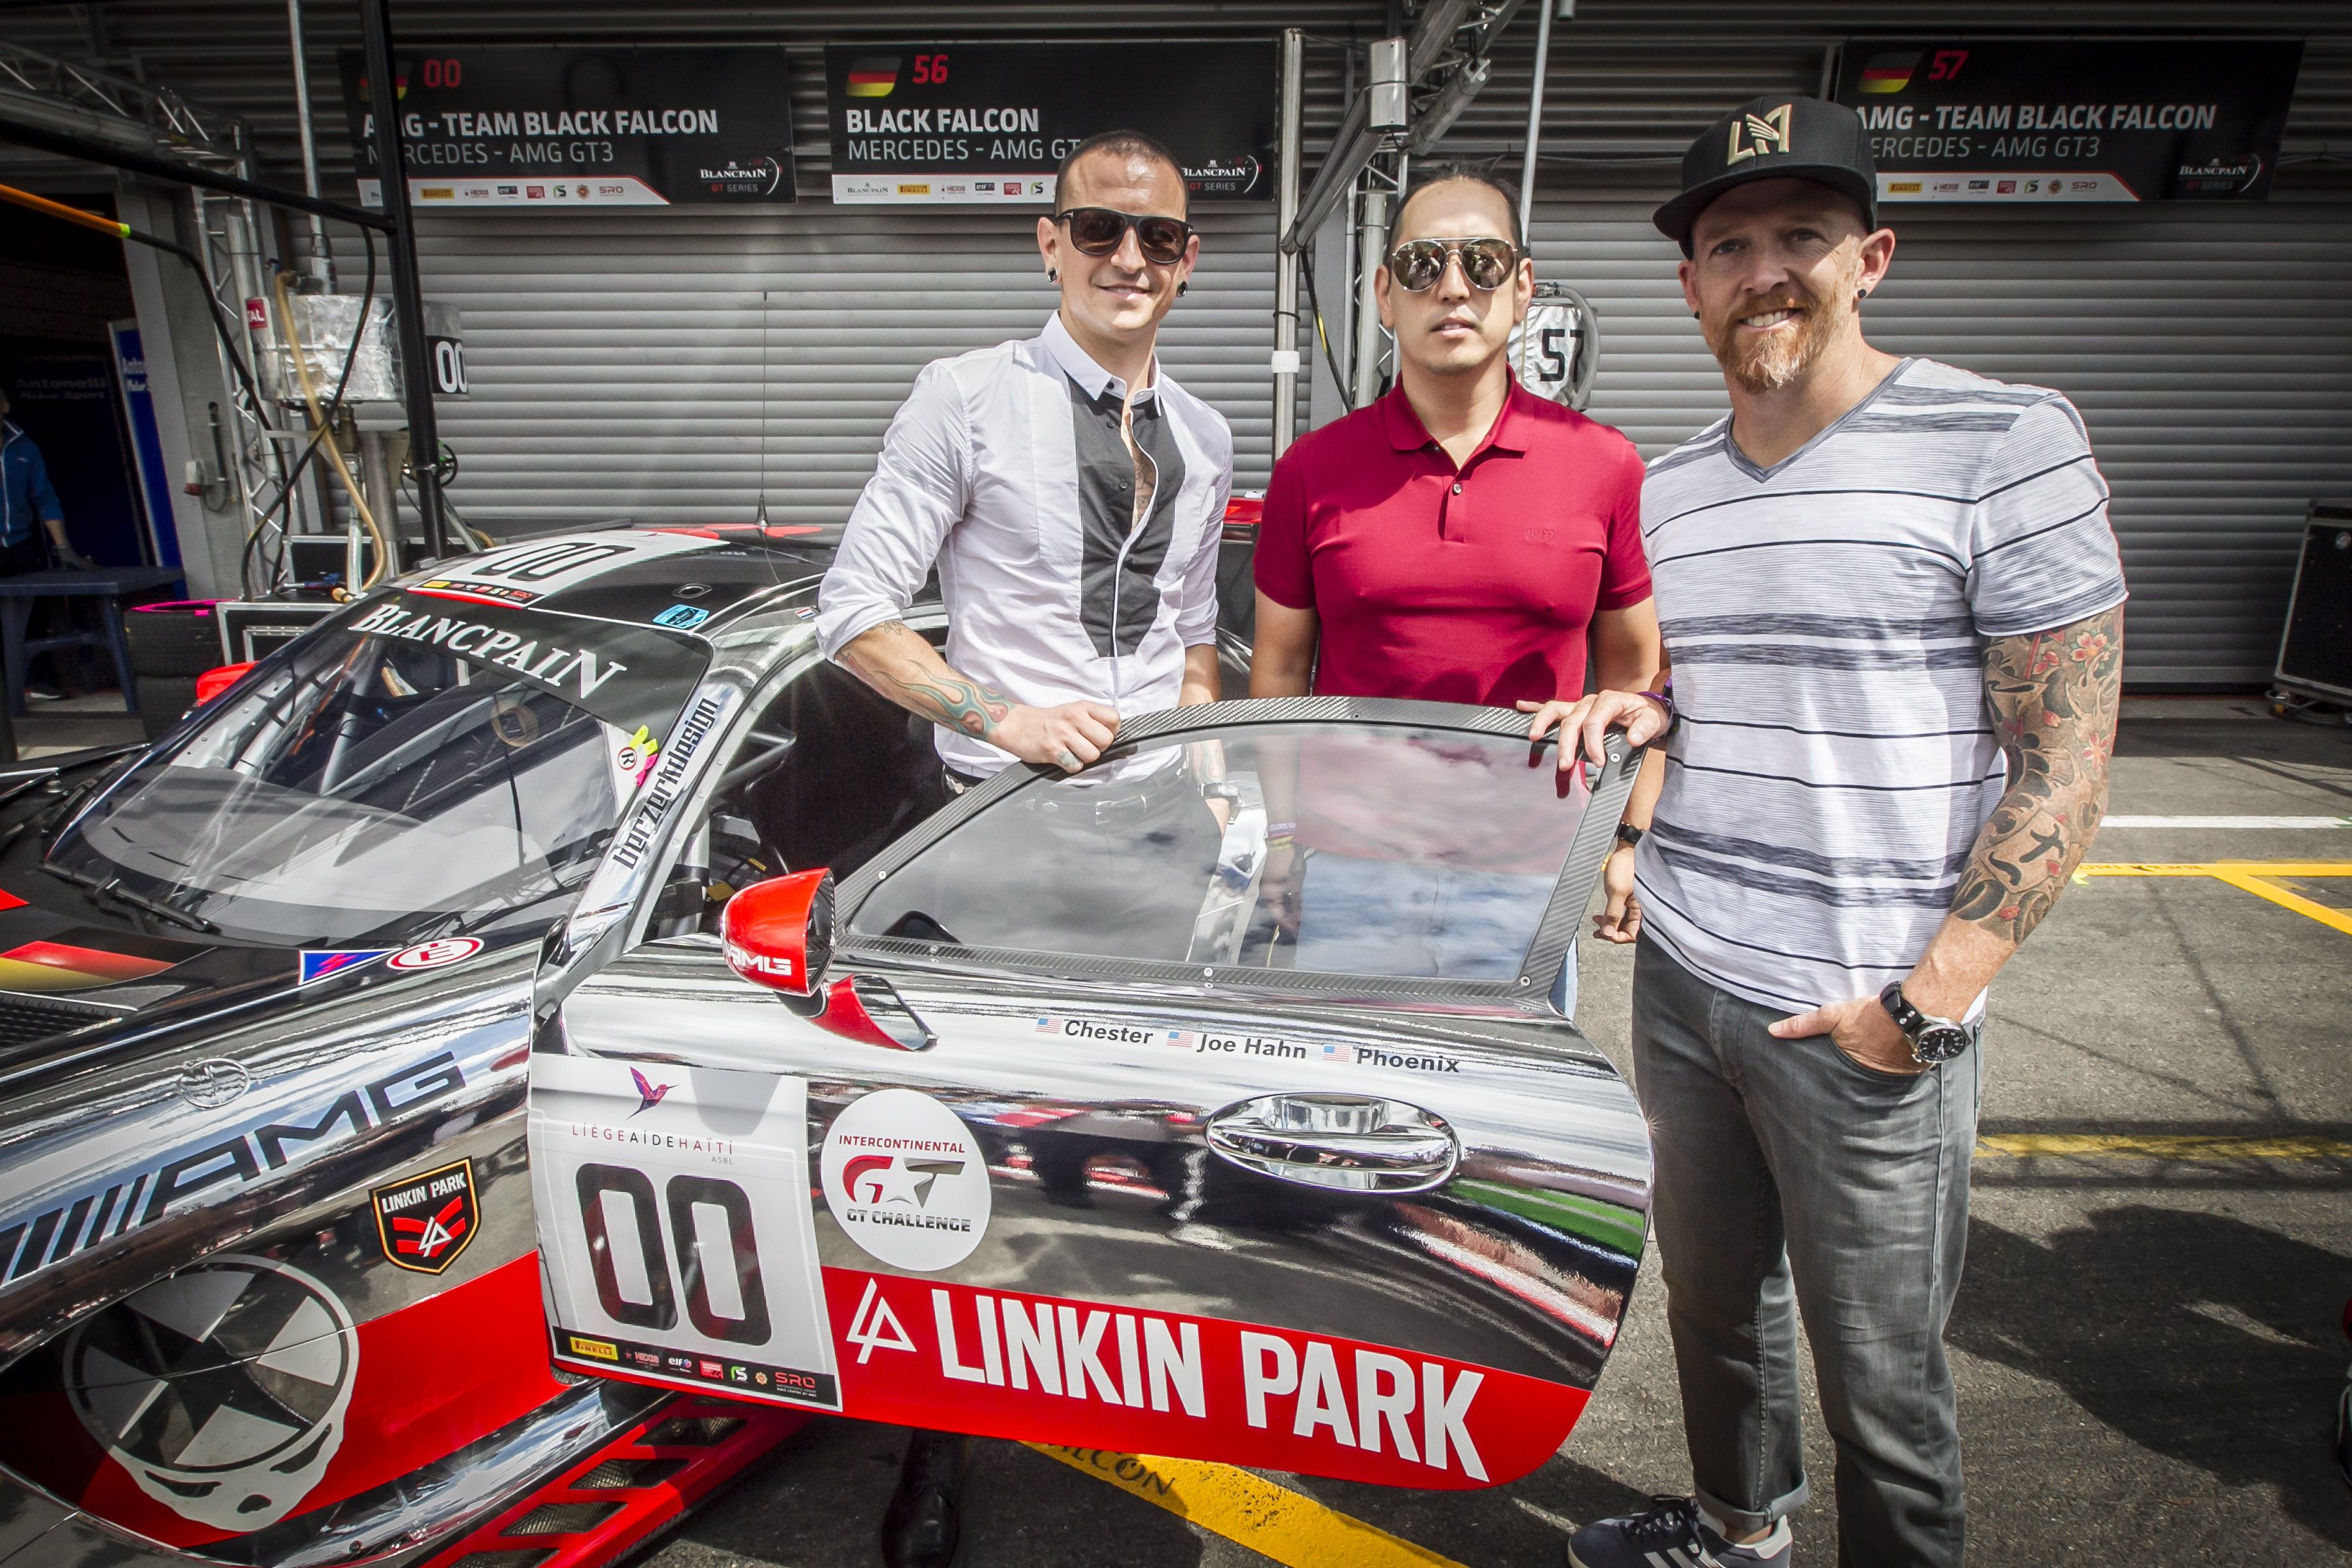 Interview: Linkin Park on Cars and their Partnership with Mercedes-AMG